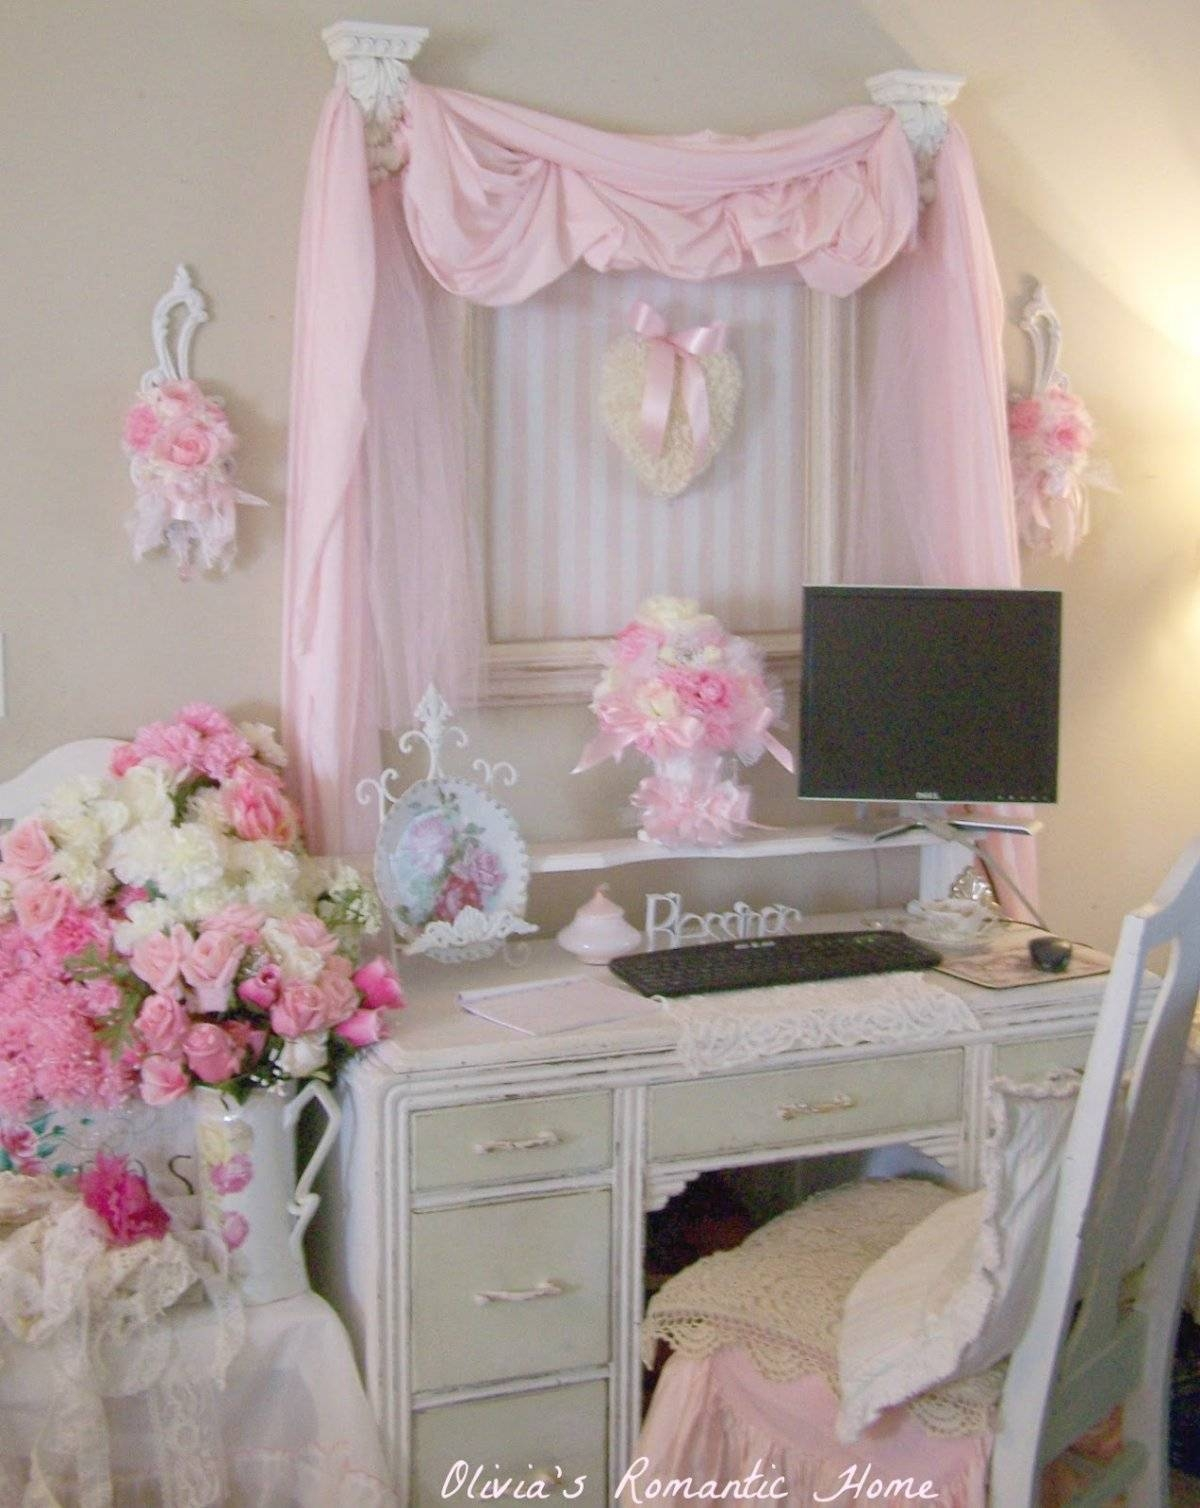 Bedroom : Small Bedroom Ideas For Teenage Using White Shabby Chic Pertaining To Shabby Chic Window Mirrors (View 8 of 25)